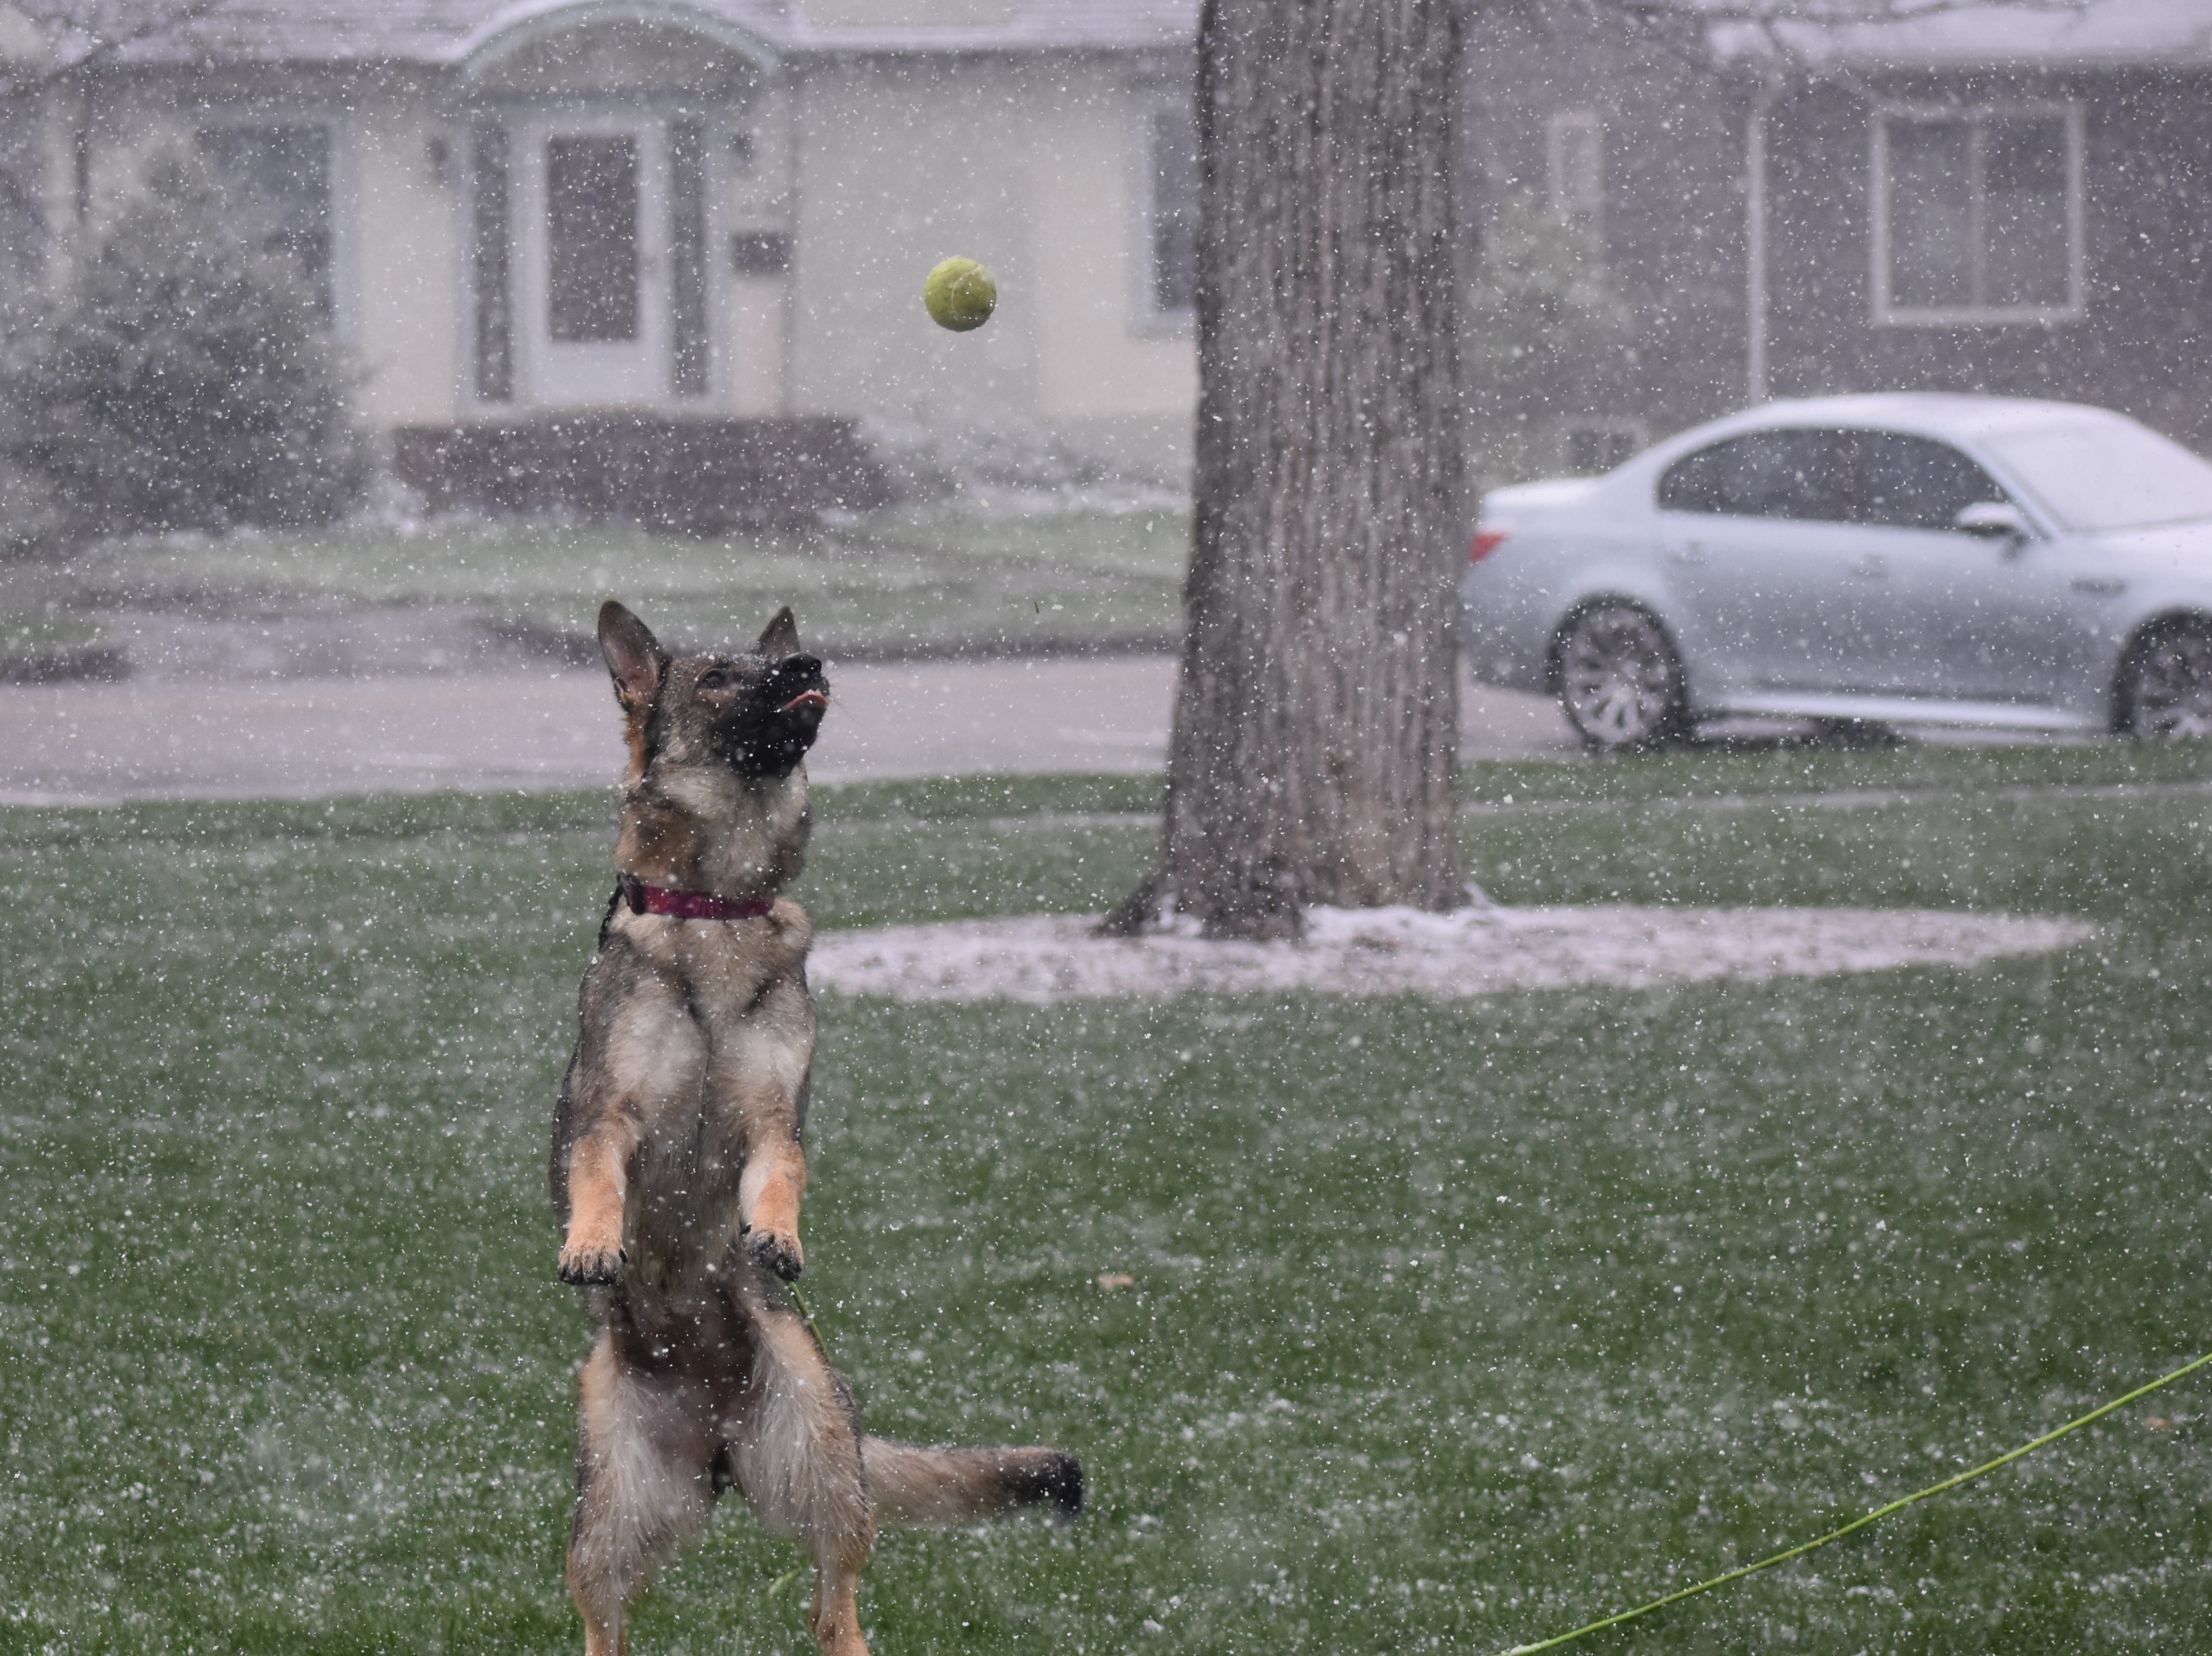 Margot the German shepherd jumps for her ball at City Park during Monday's snowstorm.